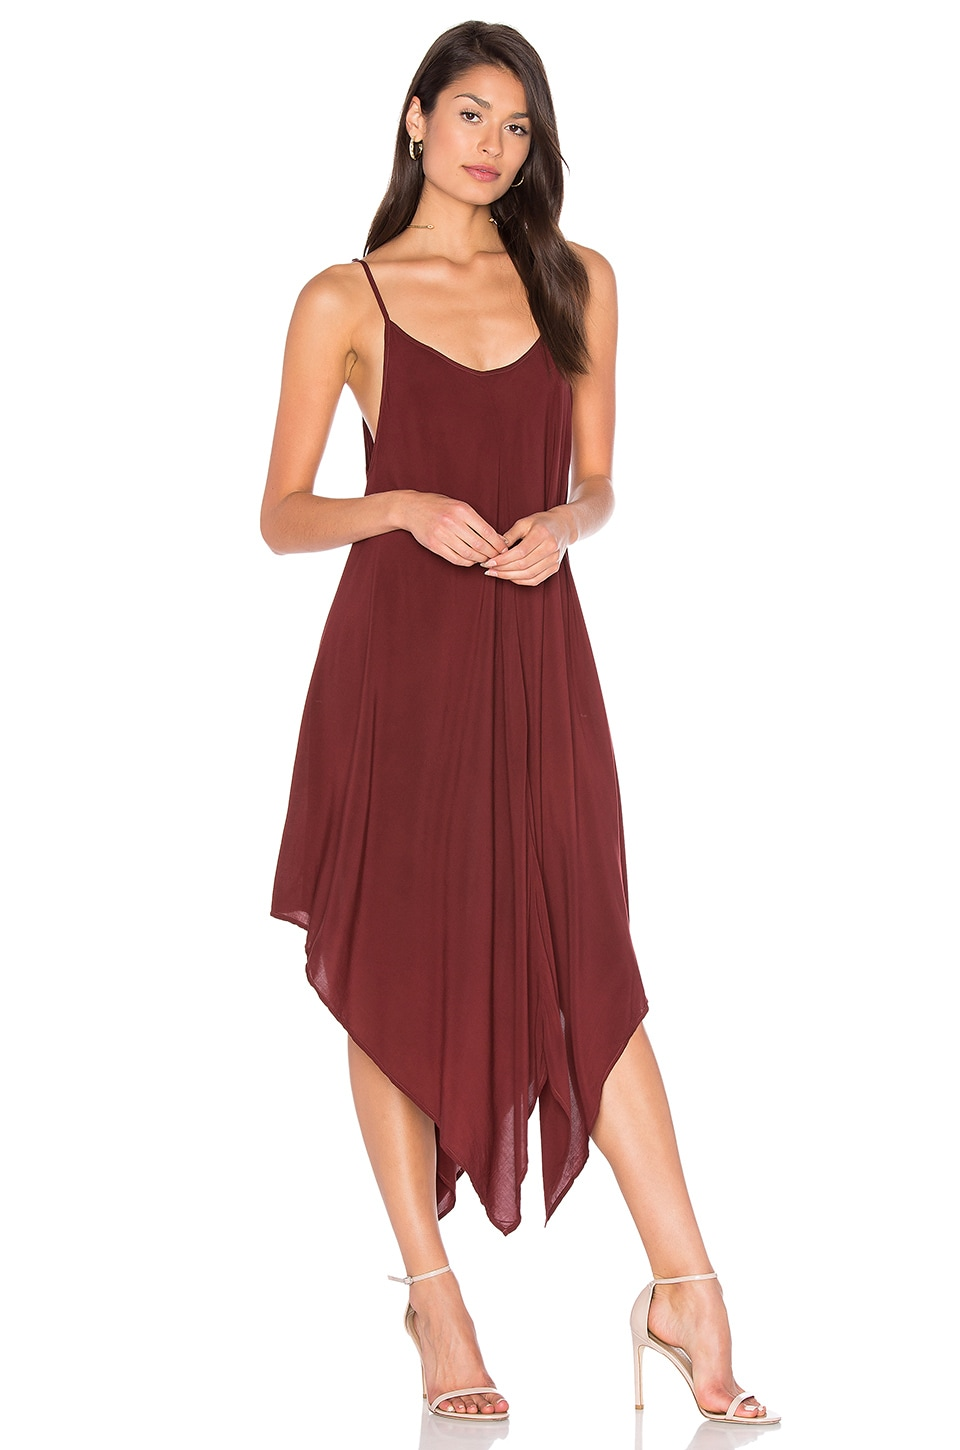 Blue Life Sundown Maxi Dress in Cinnamon